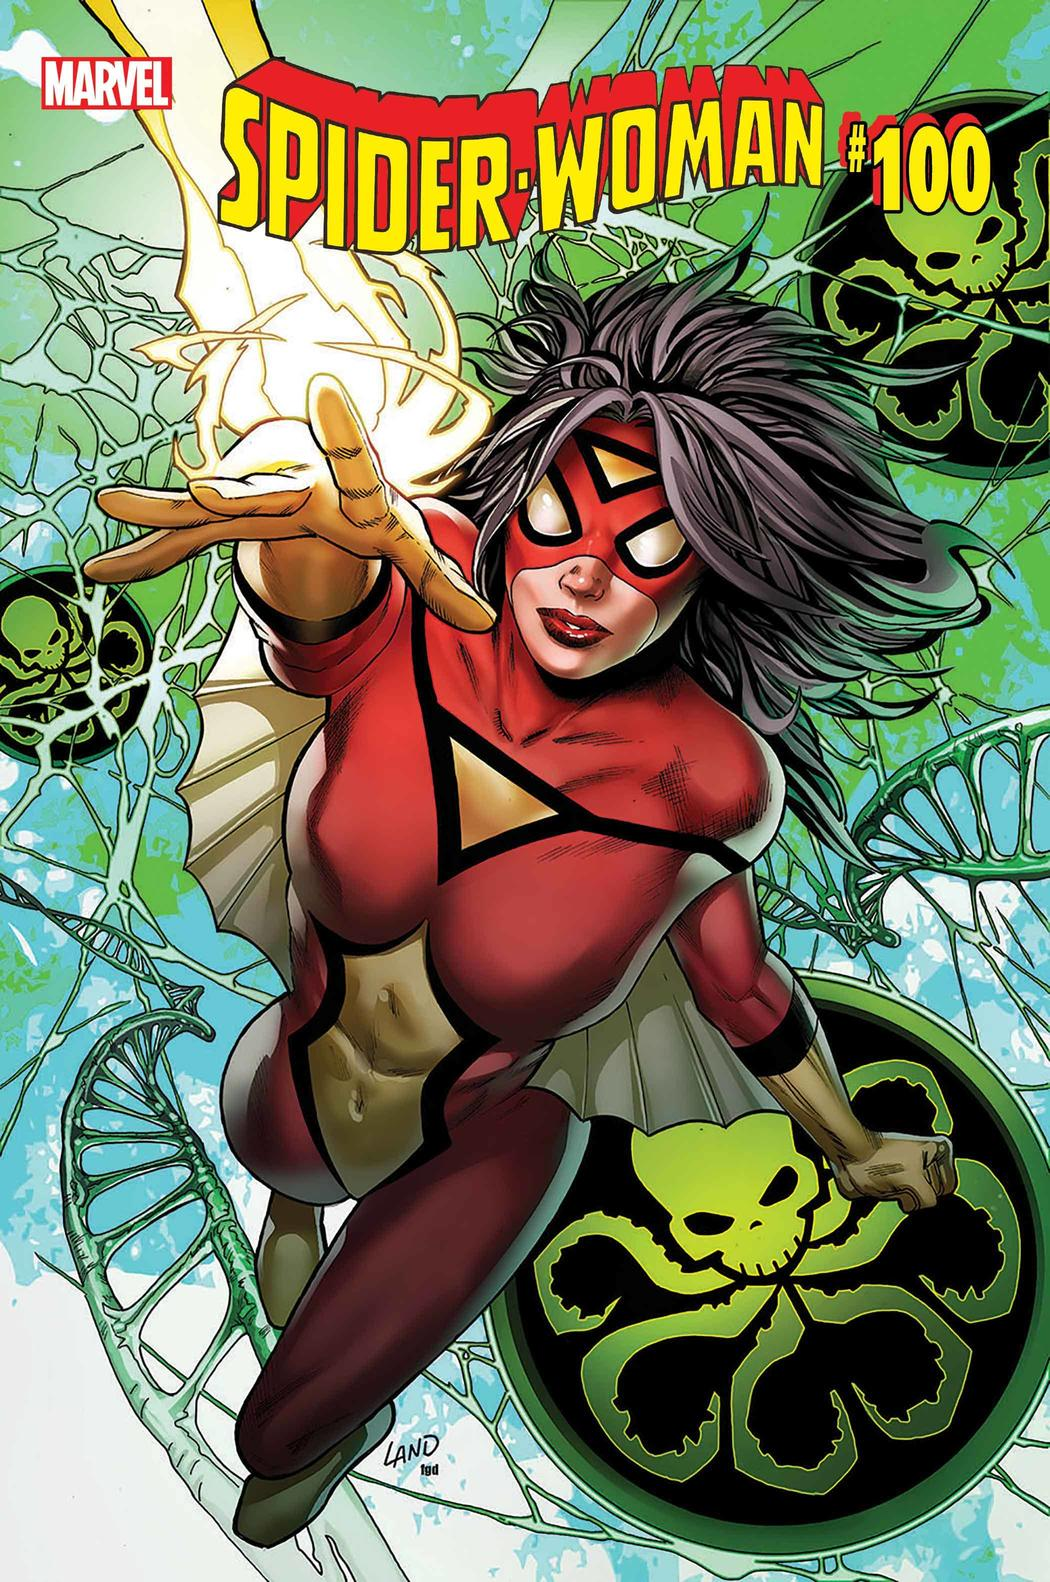 Spider-Woman #100 cover